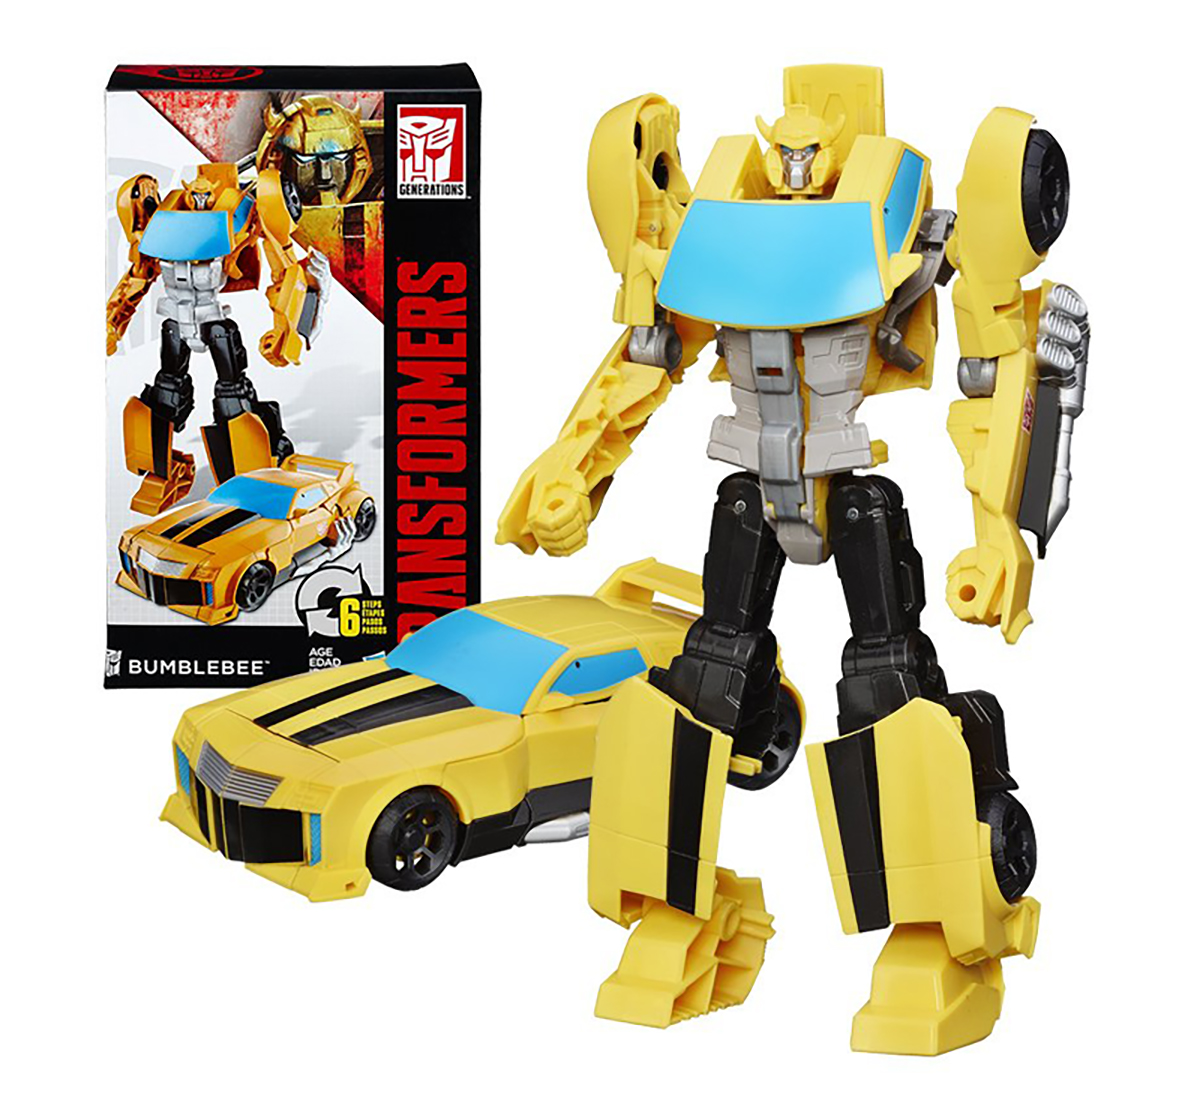 Transformers | Transformers Cyber Commander Series Bumblebee, Yellow Action Figures for Kids age 4Y+ (Yellow)